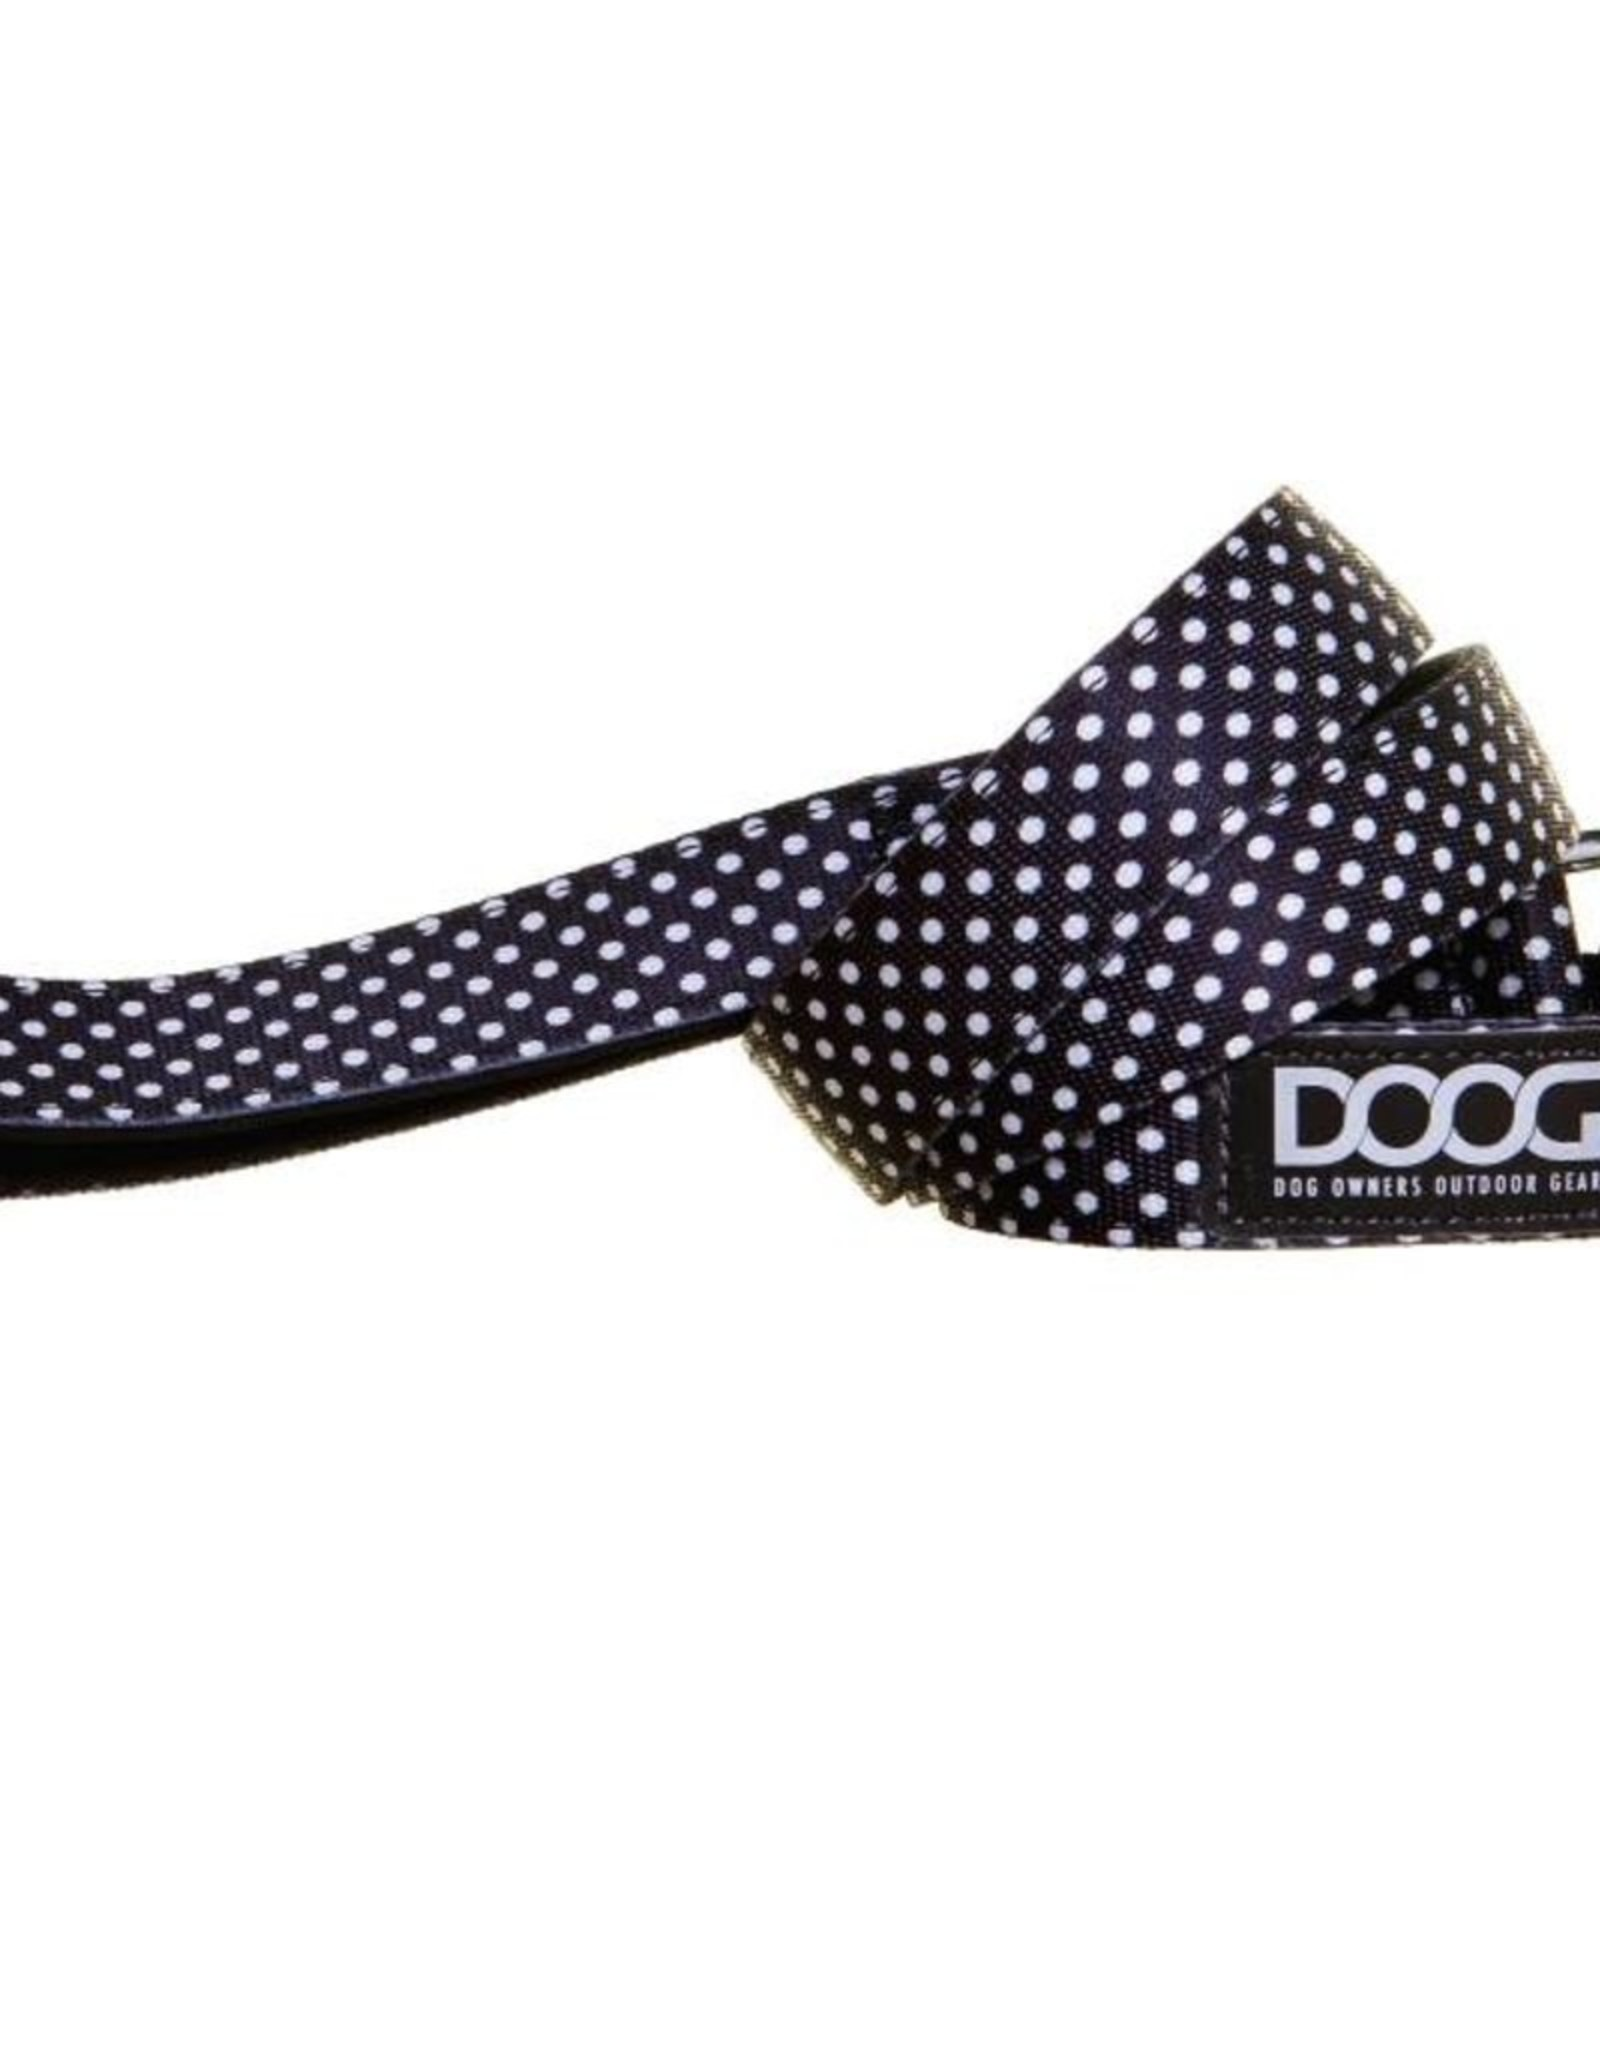 DOOG Doog | Pongo Collars and Leashes